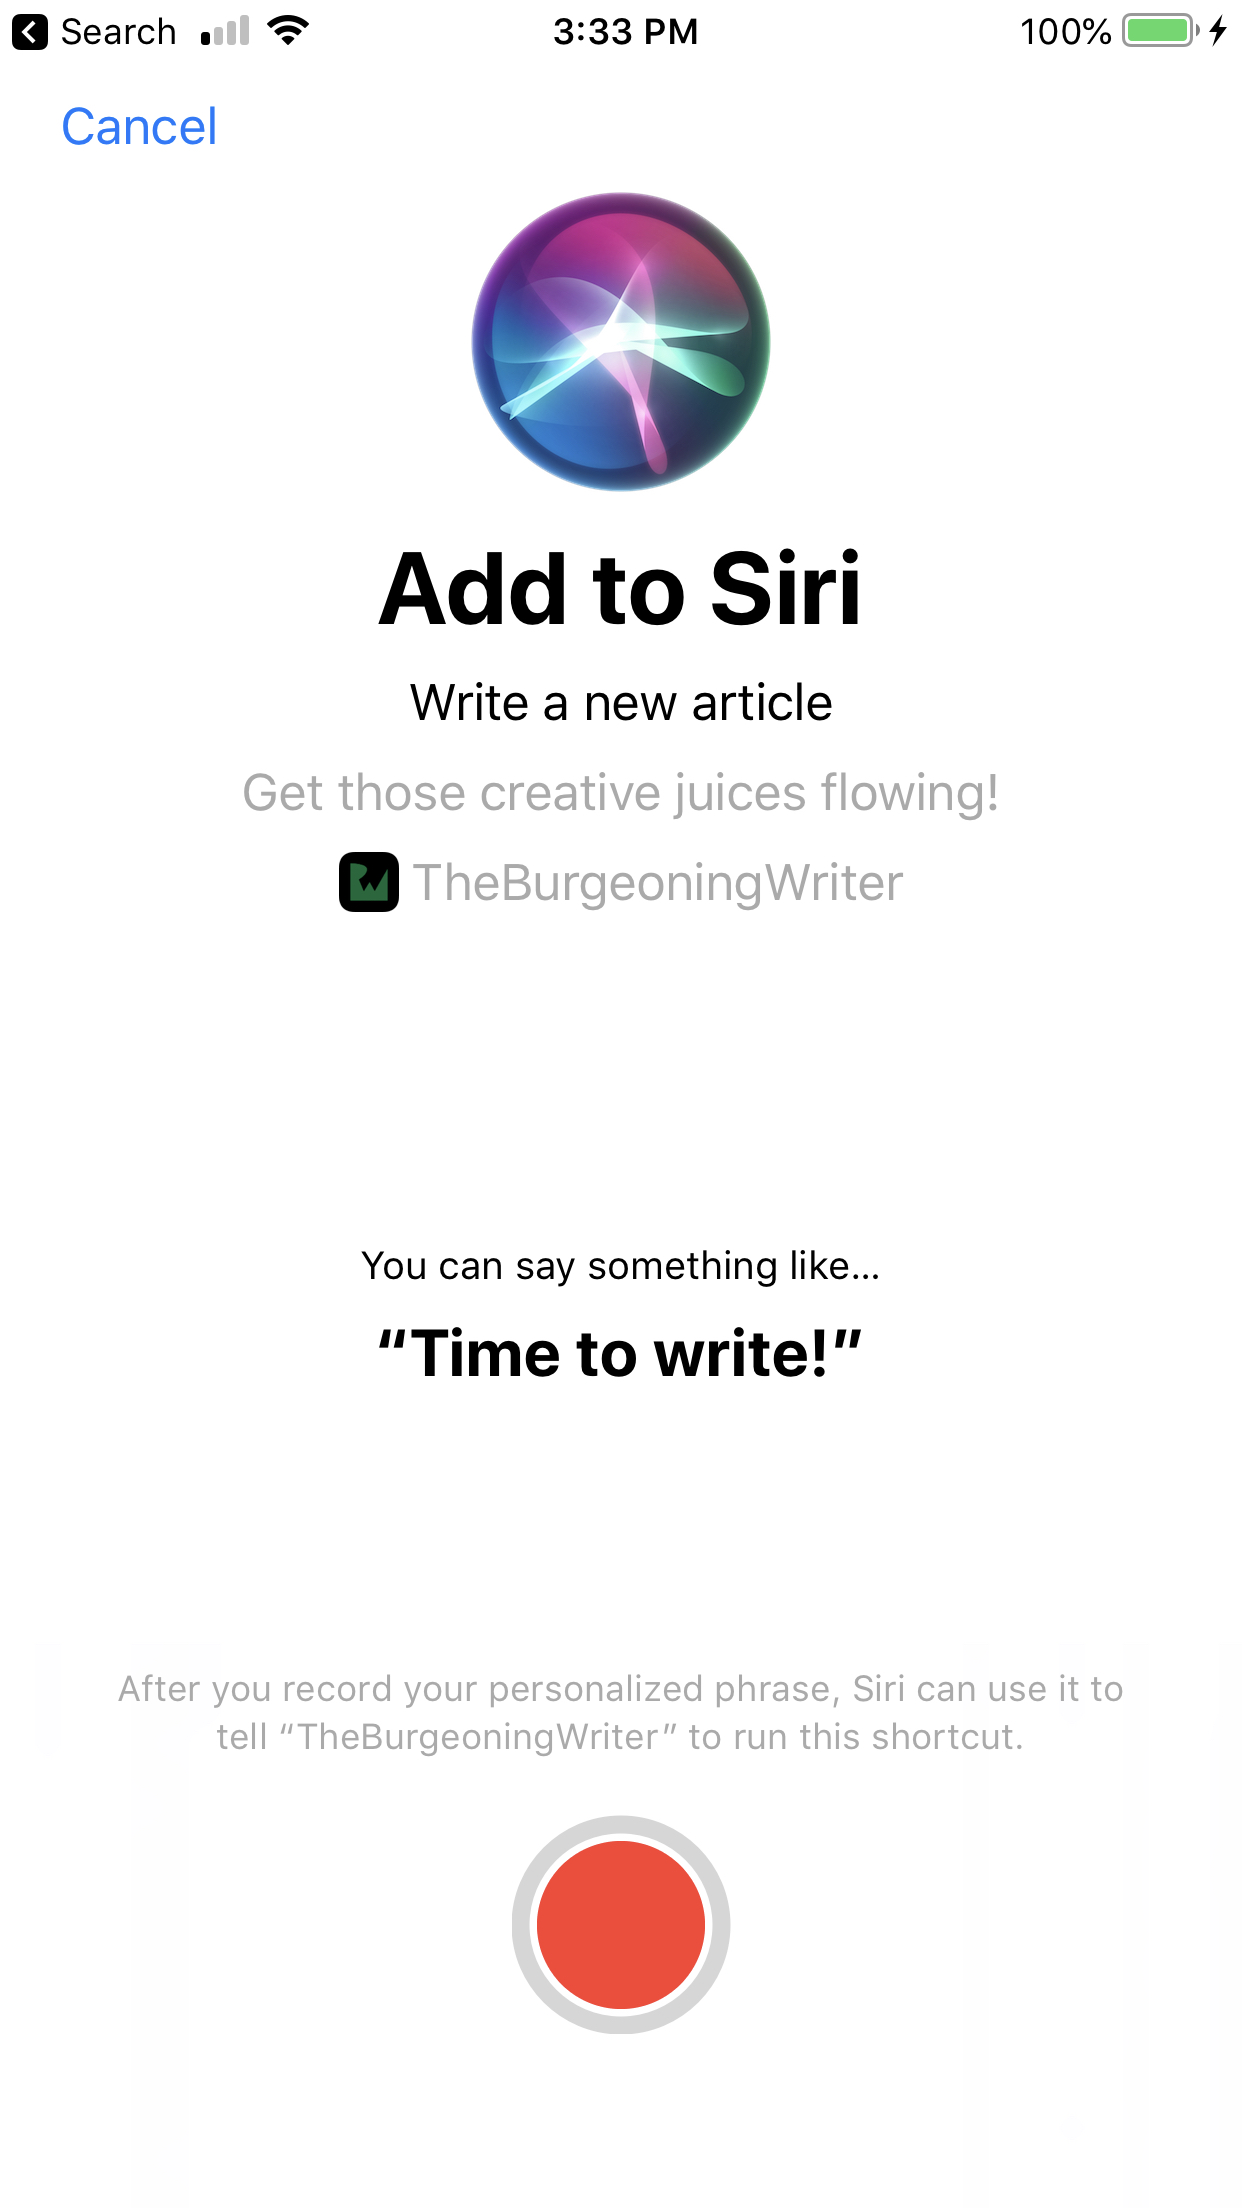 - AddToSiri - Siri Shortcuts Tutorial in iOS 12